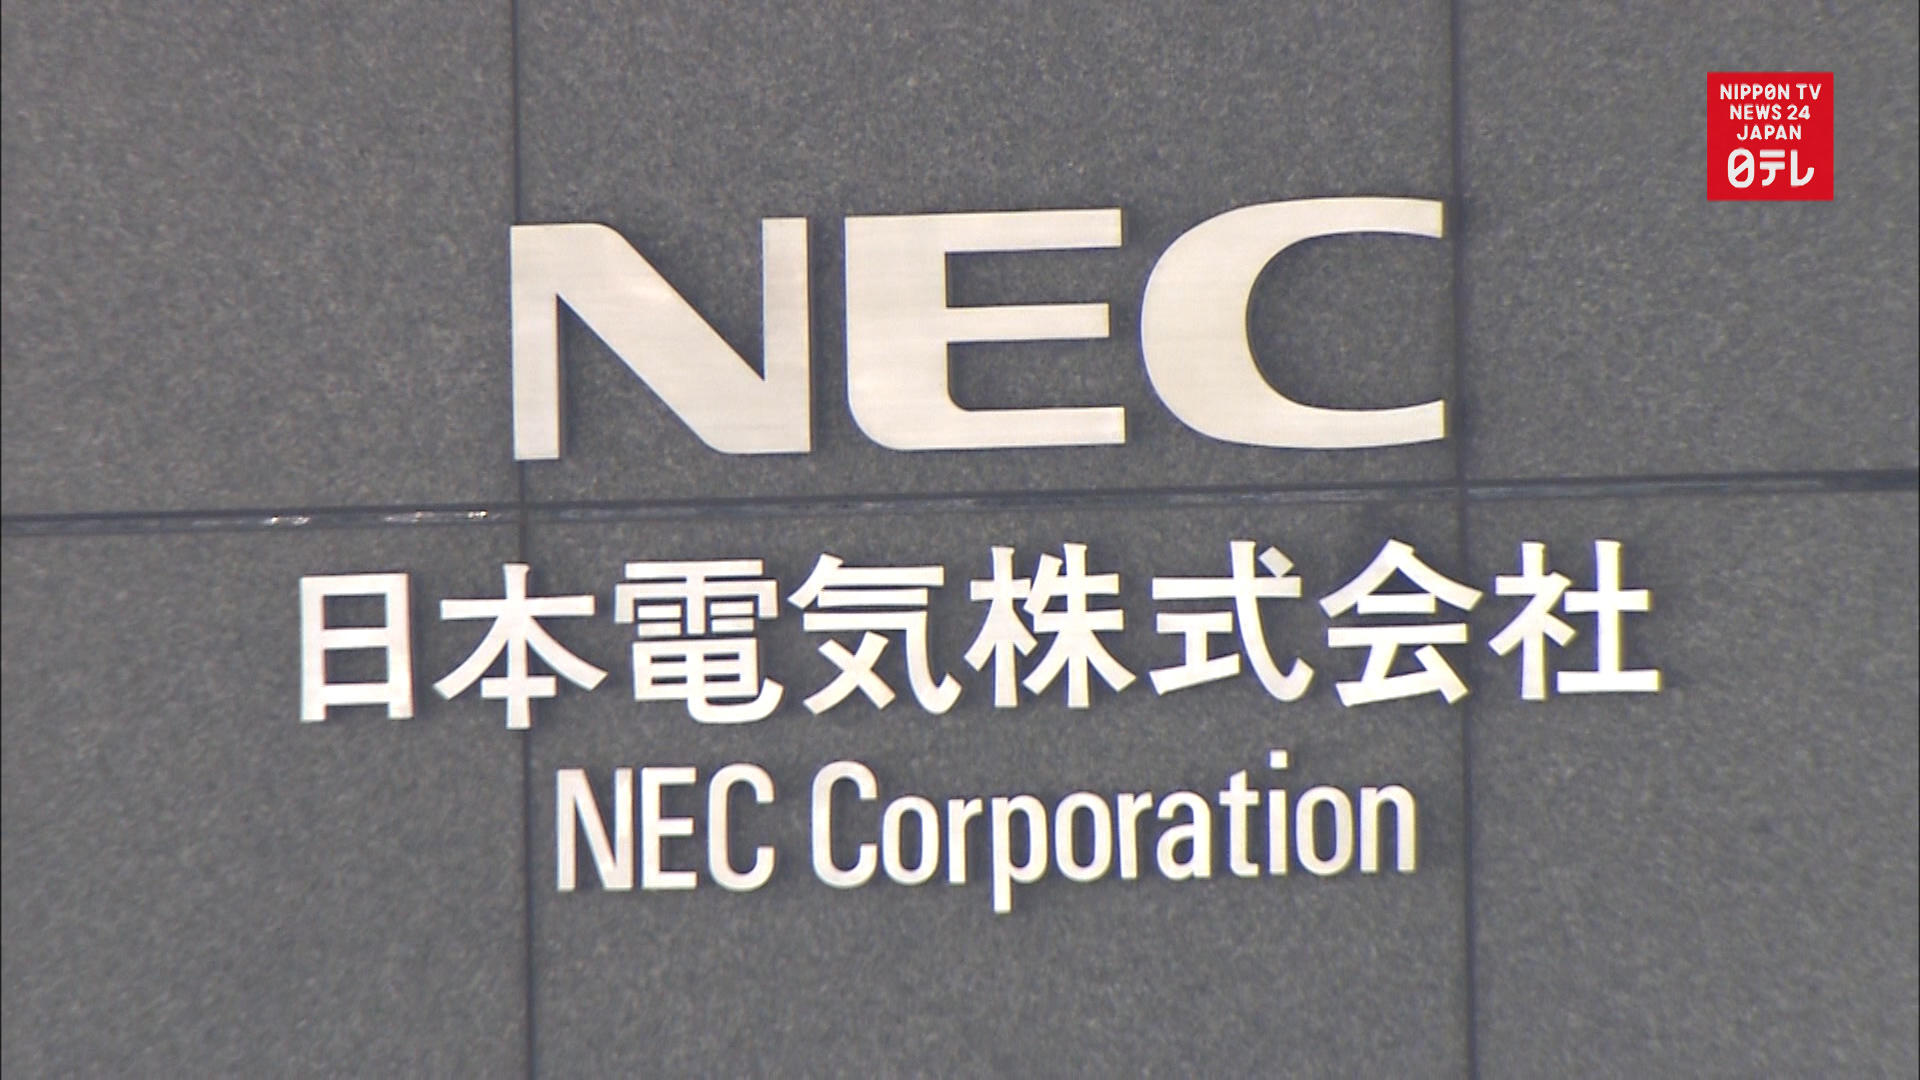 NEC hacked, 28K pieces of information may have been stolen